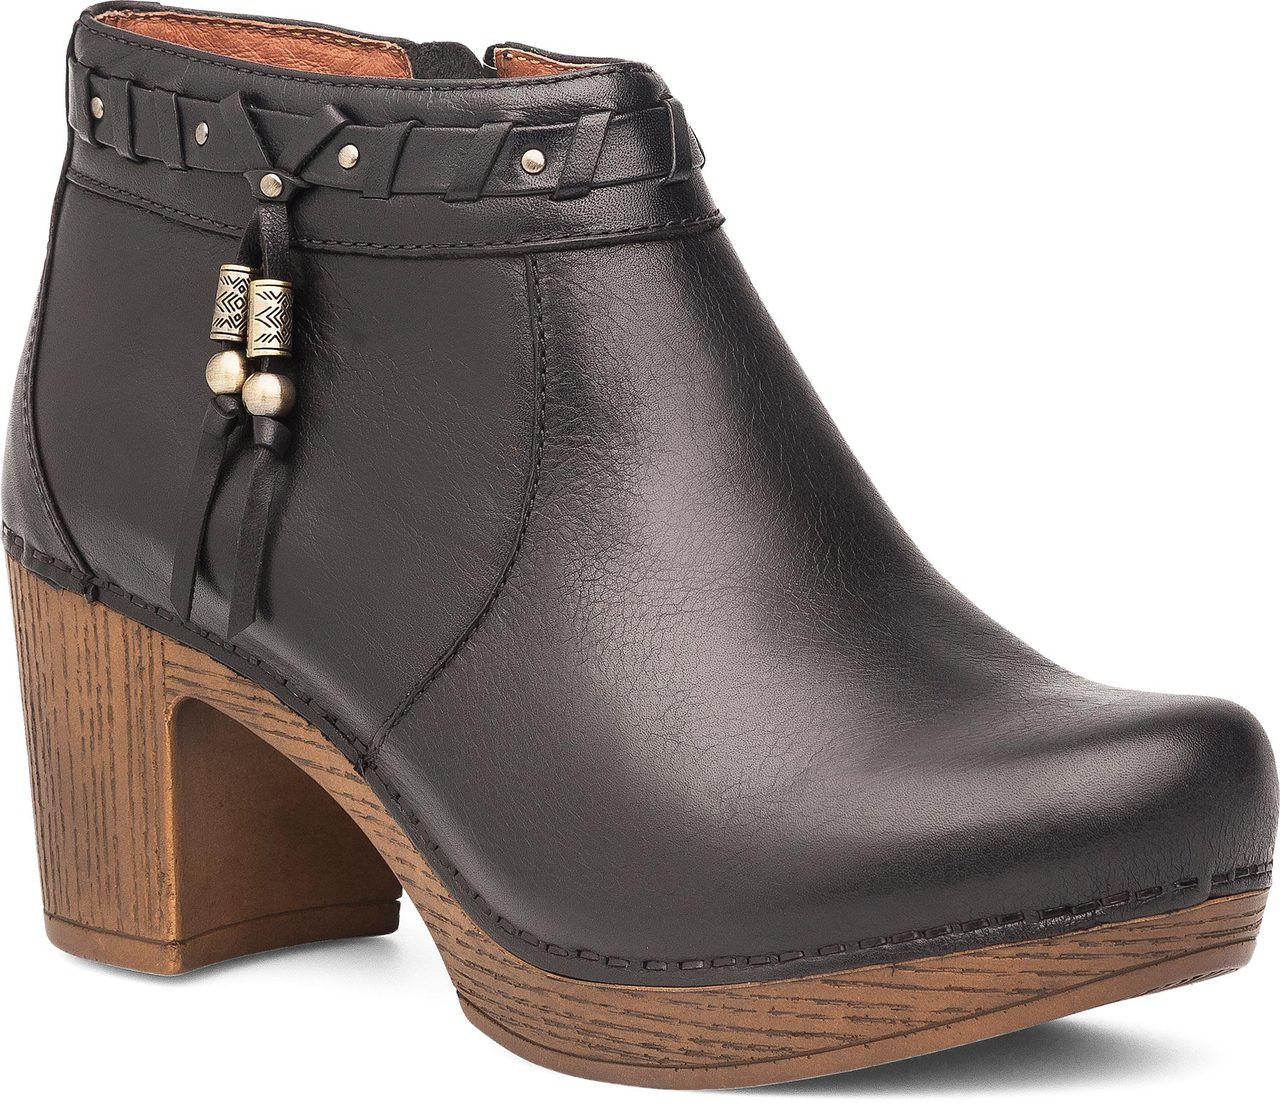 6pm Boots Clearance